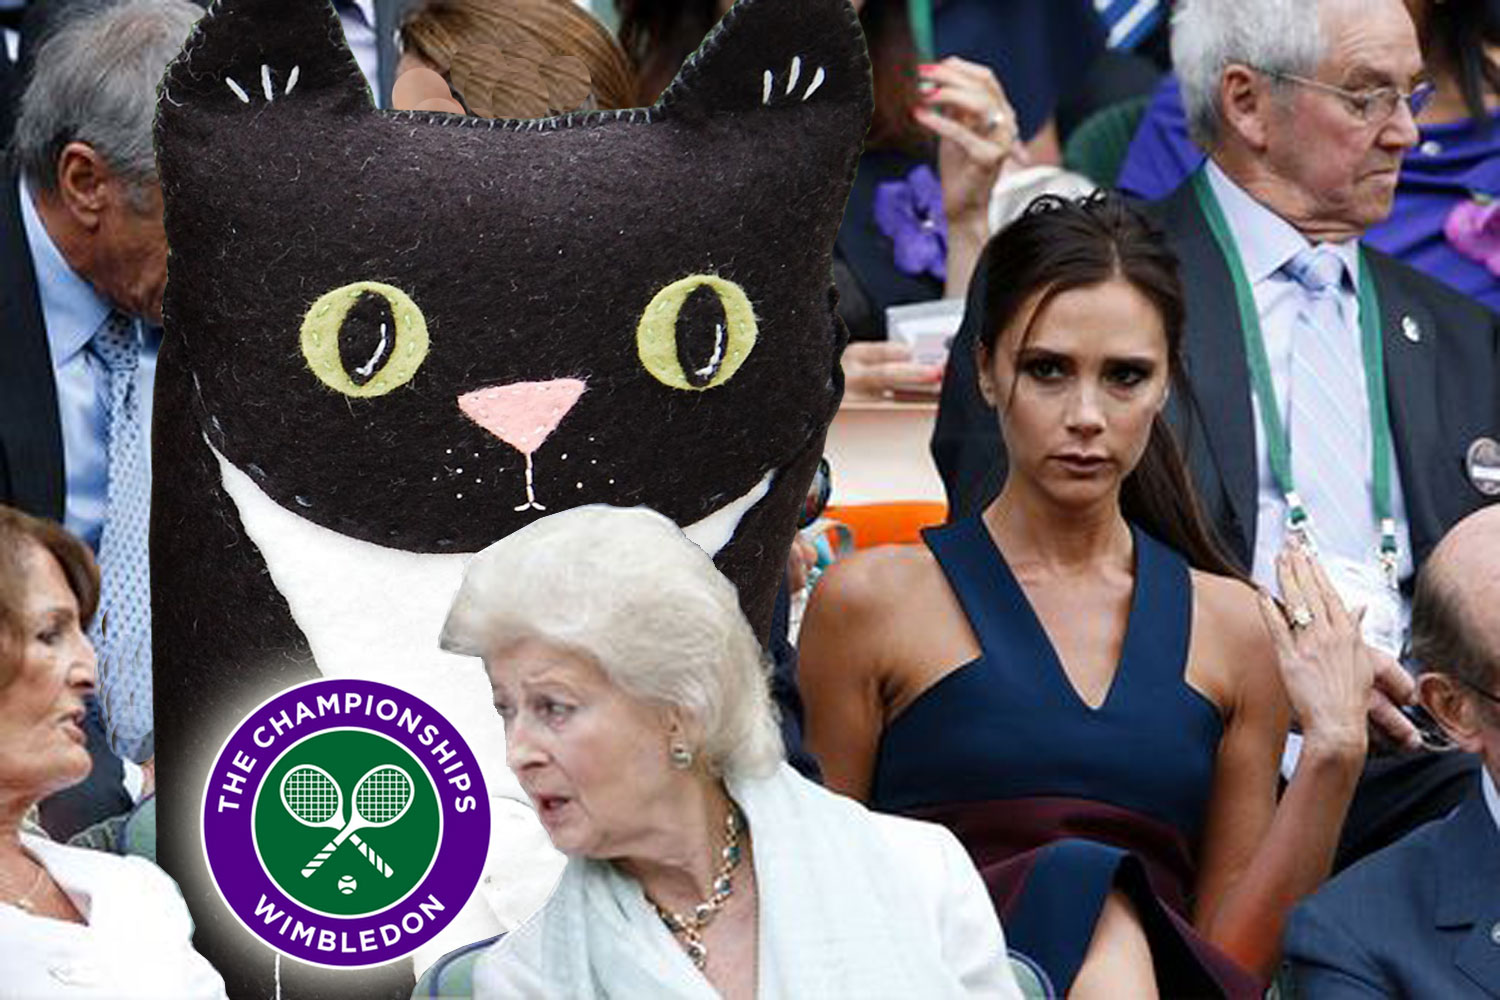 Posh turns up at Wimbledon with her fashionable friend Felt Cat.